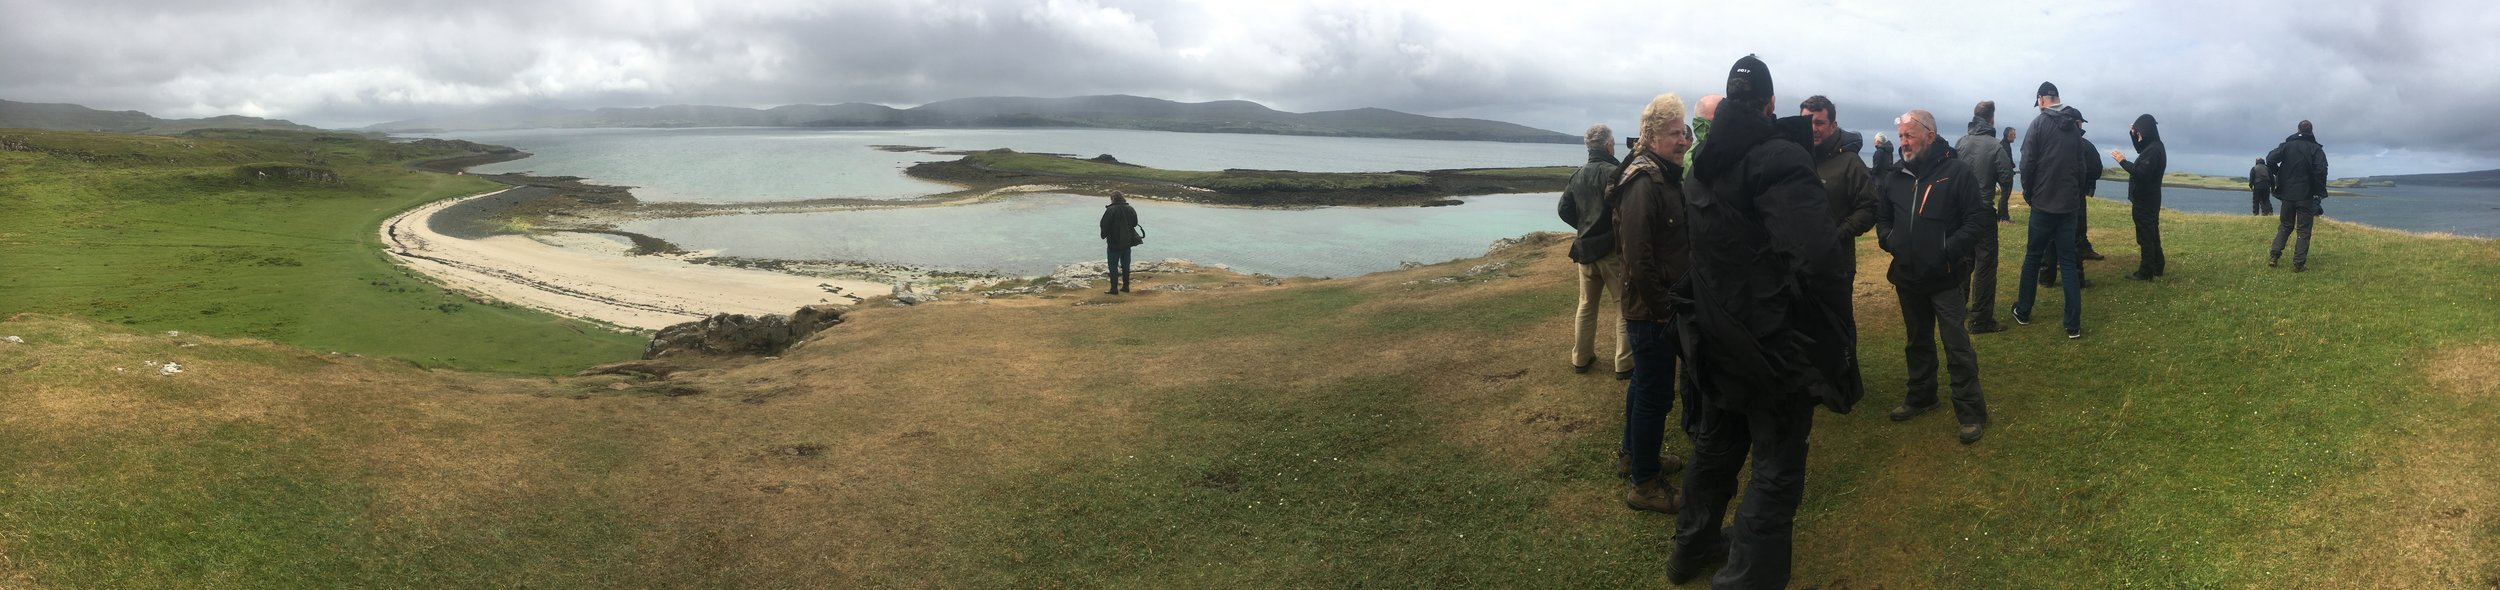 On Skye looking into spots for Outlaw King